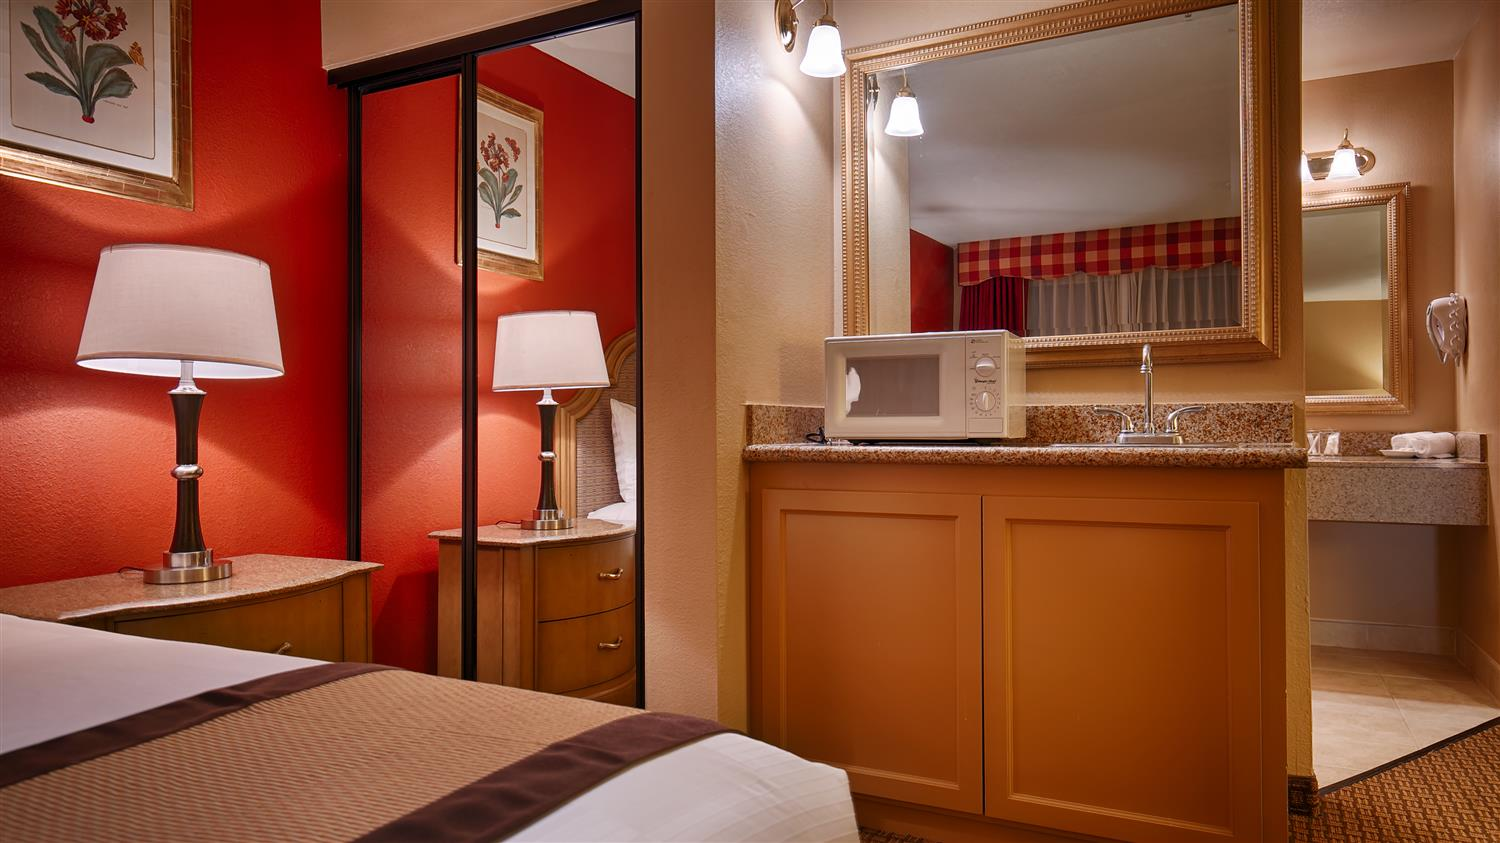 Upgrade Yourself To Our King Suite Or Added Comfort During Your Stay